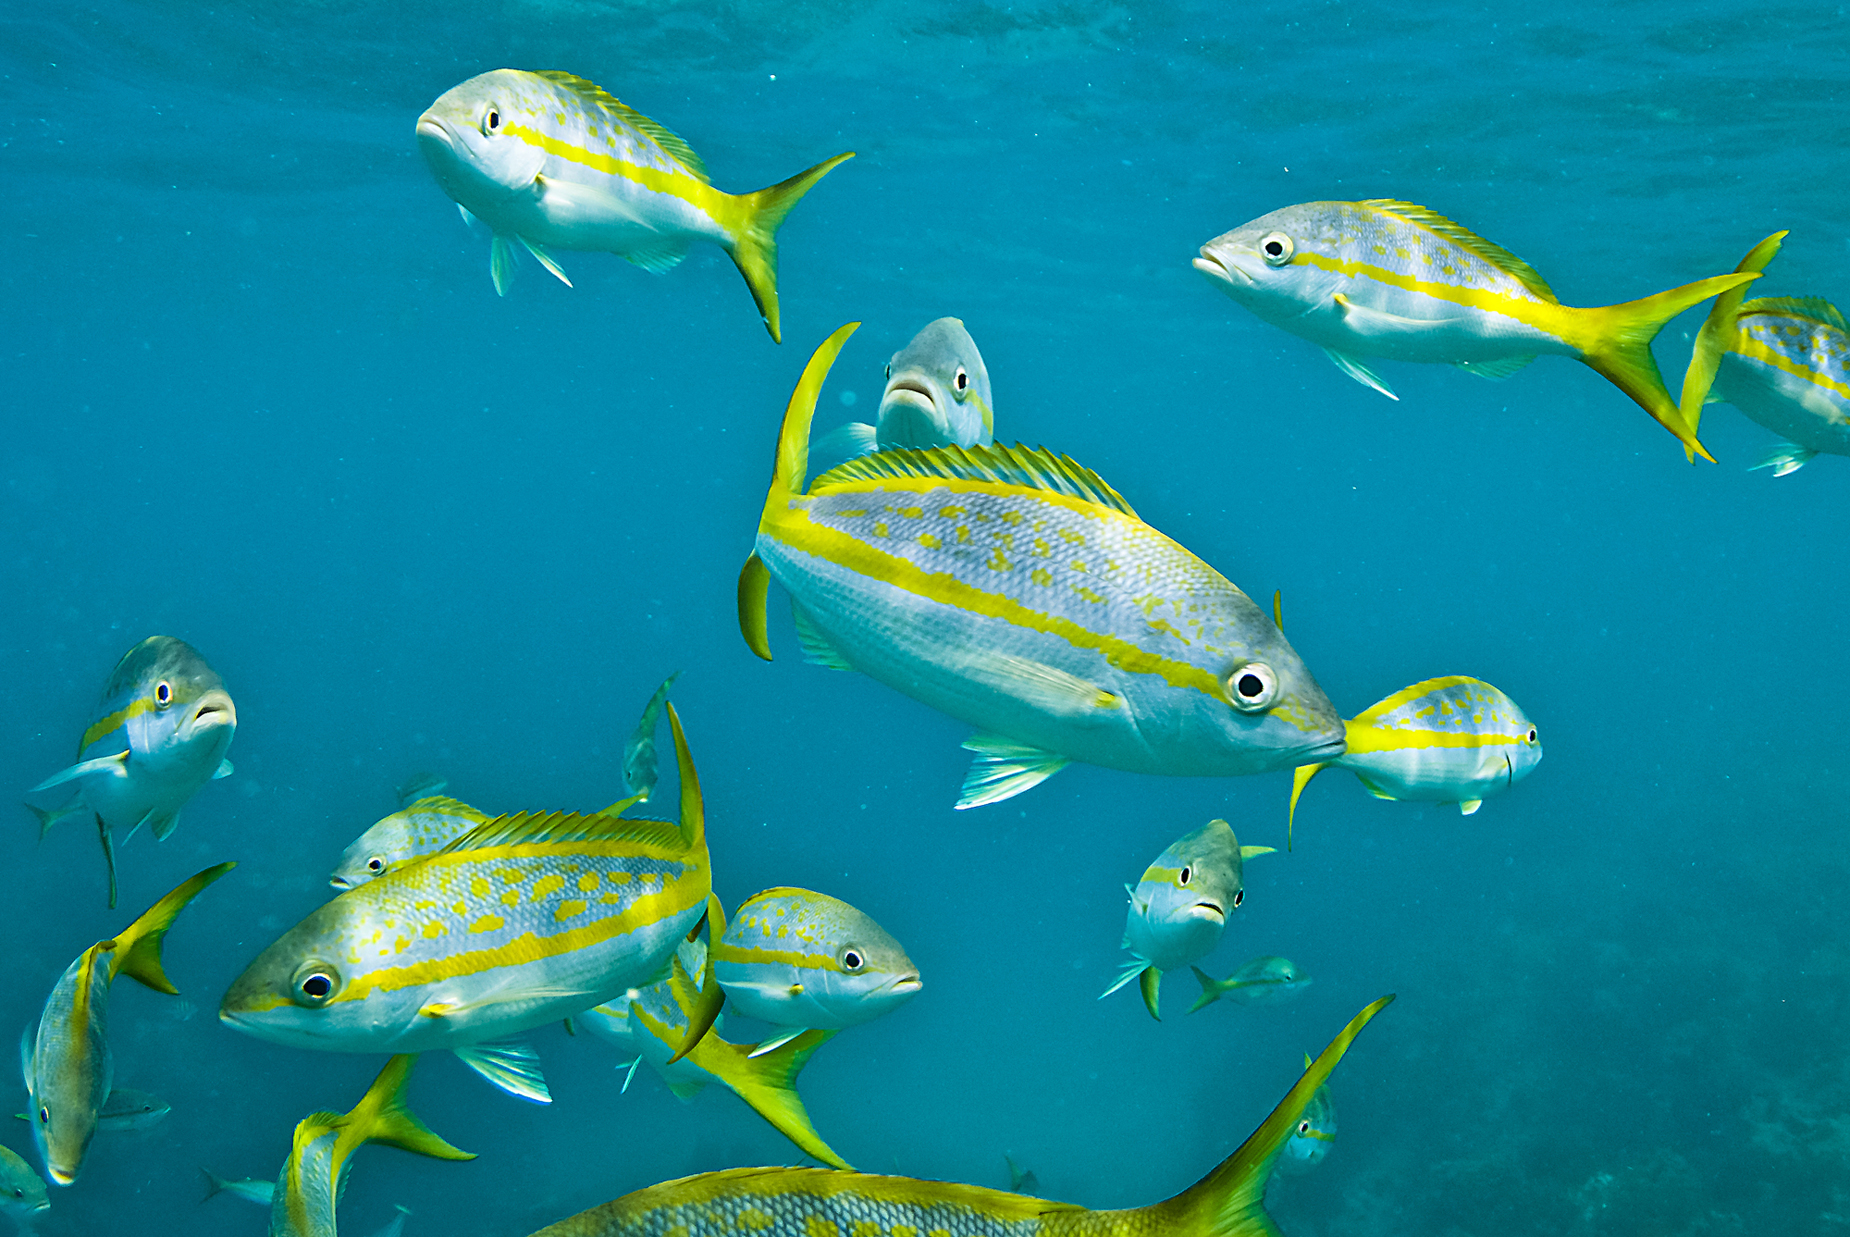 Yellowtail snapper fishes wallpaper